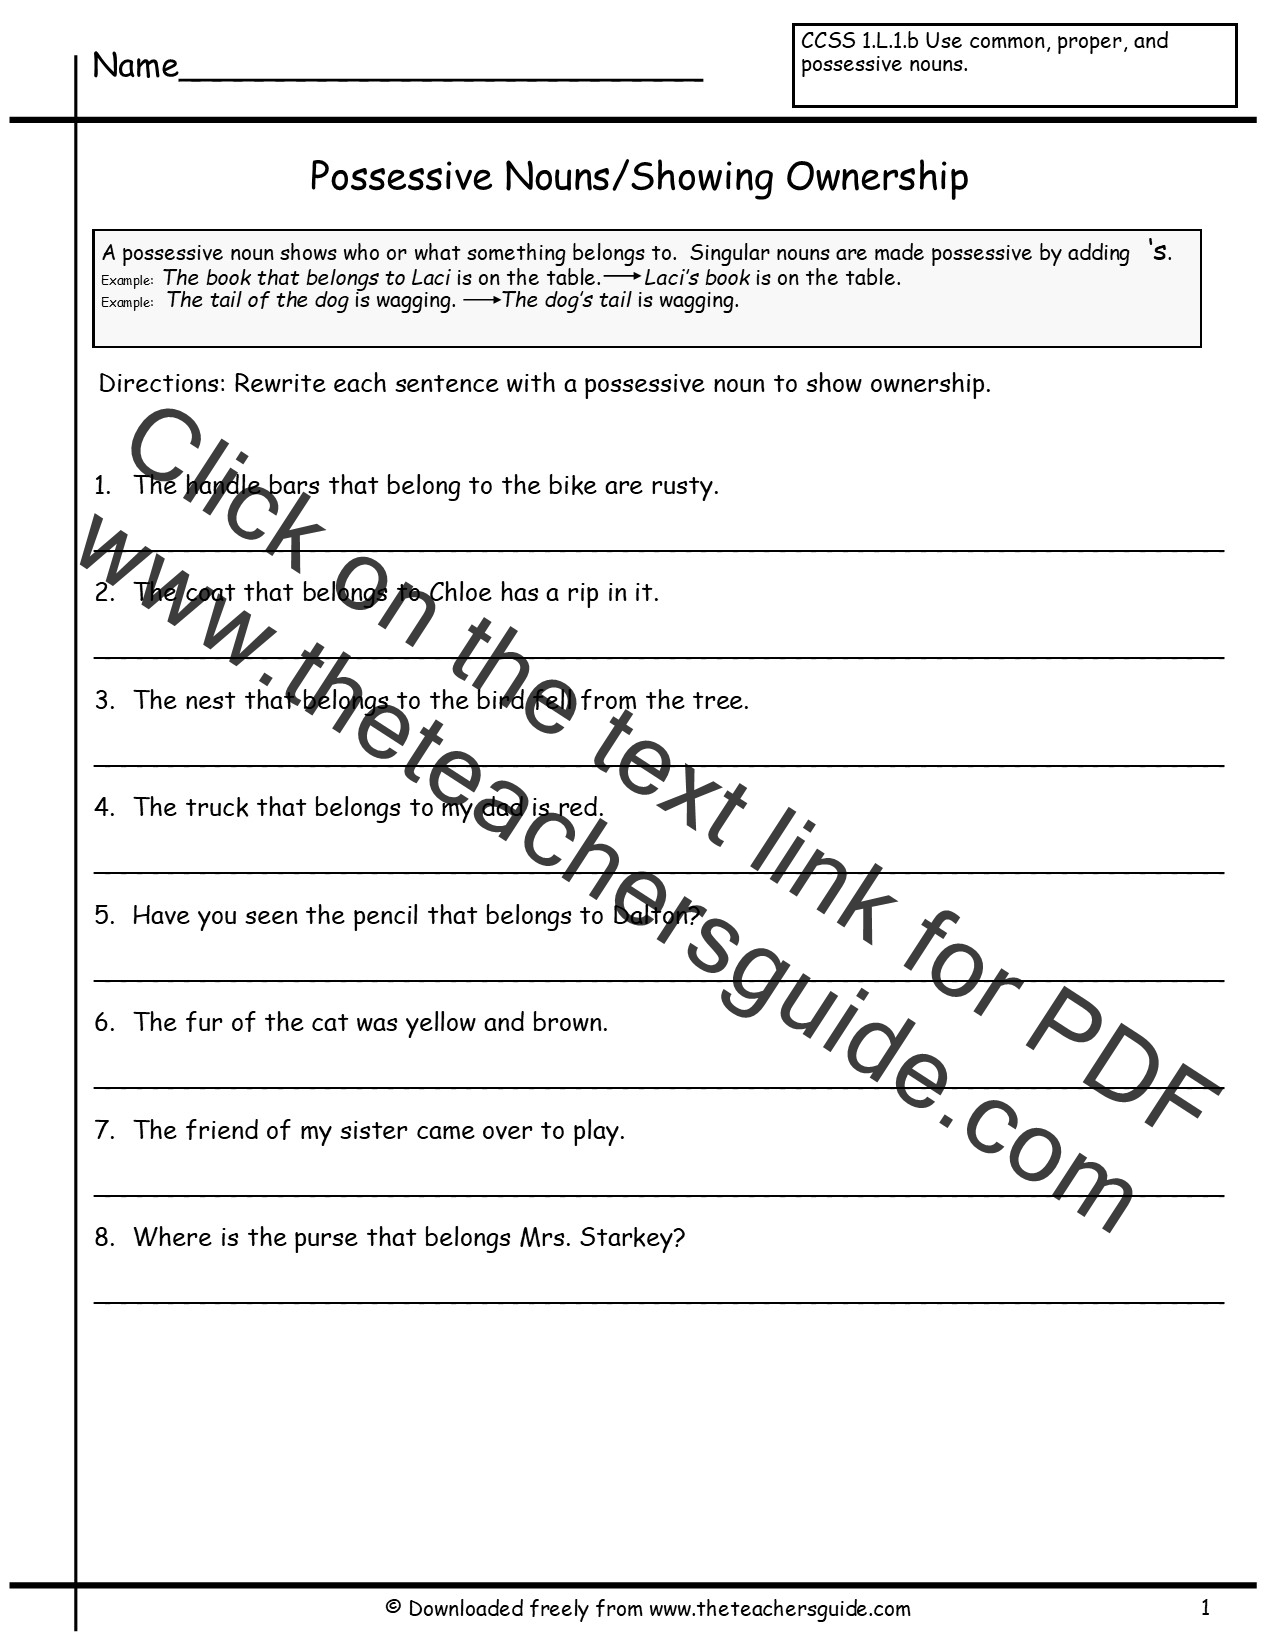 Possessive Nouns Worksheets from The Teachers Guide – Nouns Worksheets